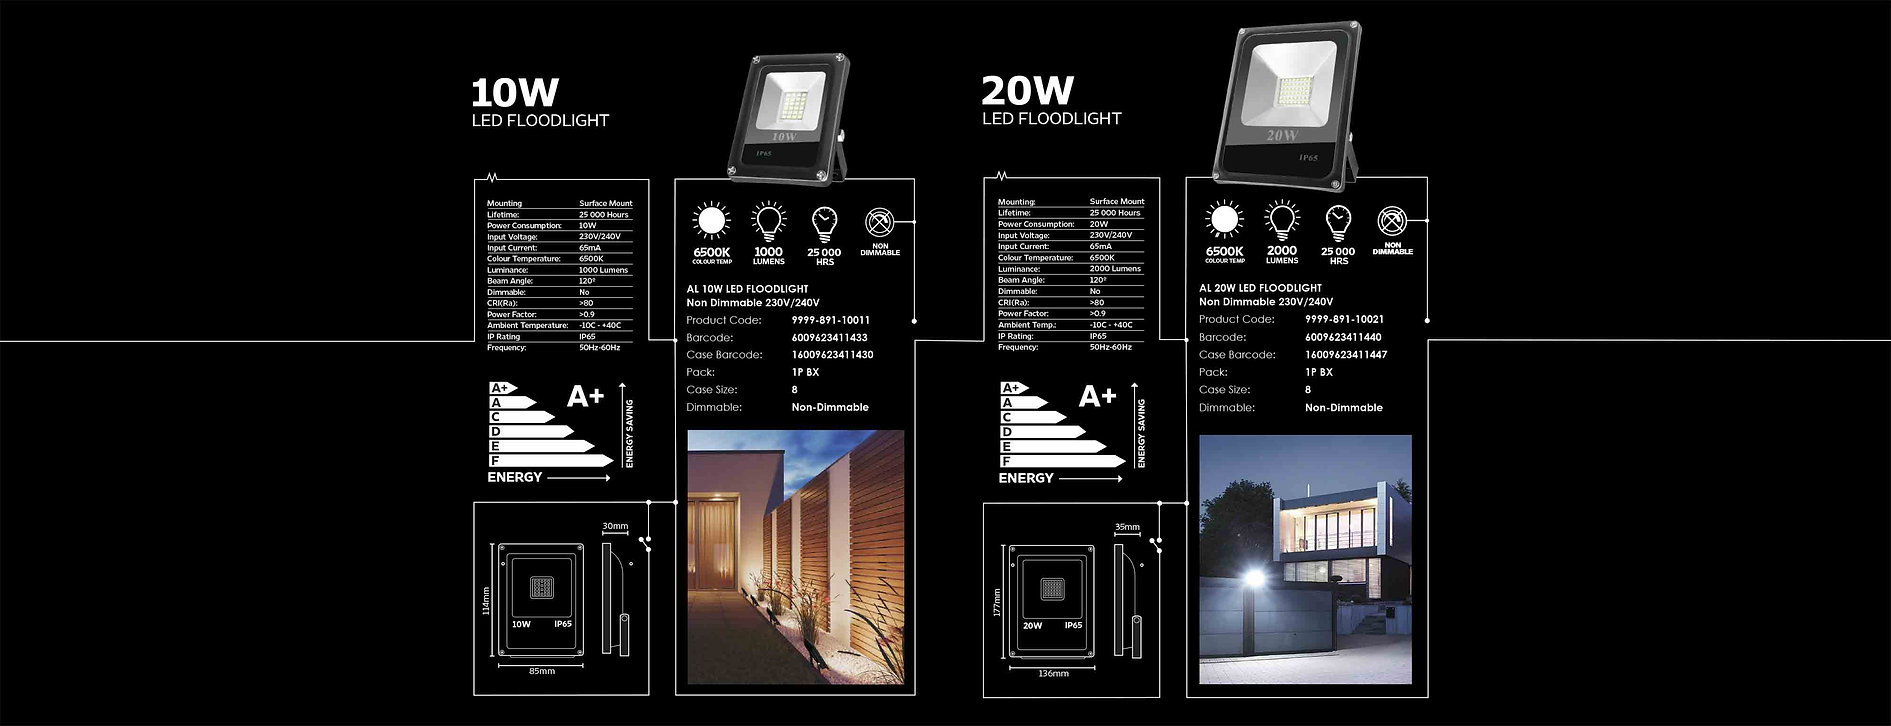 amplux-led-floodlights-10w-20w.jpg